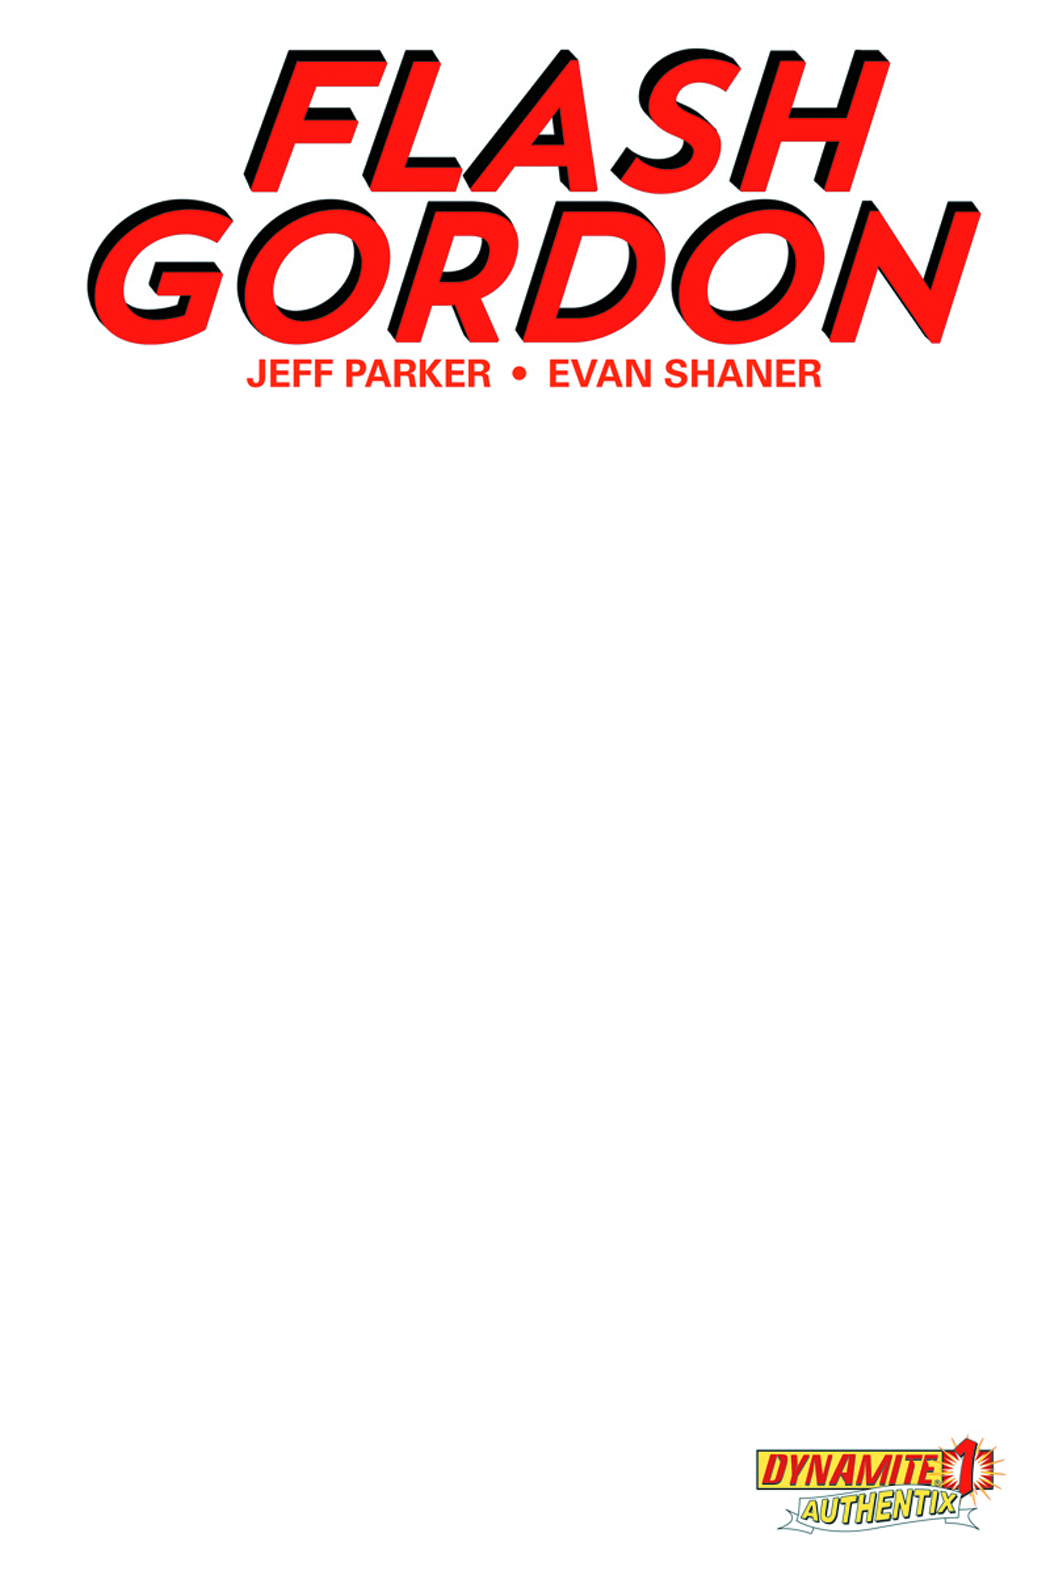 FLASH GORDON #1 BLANK AUTHENTIX CVR